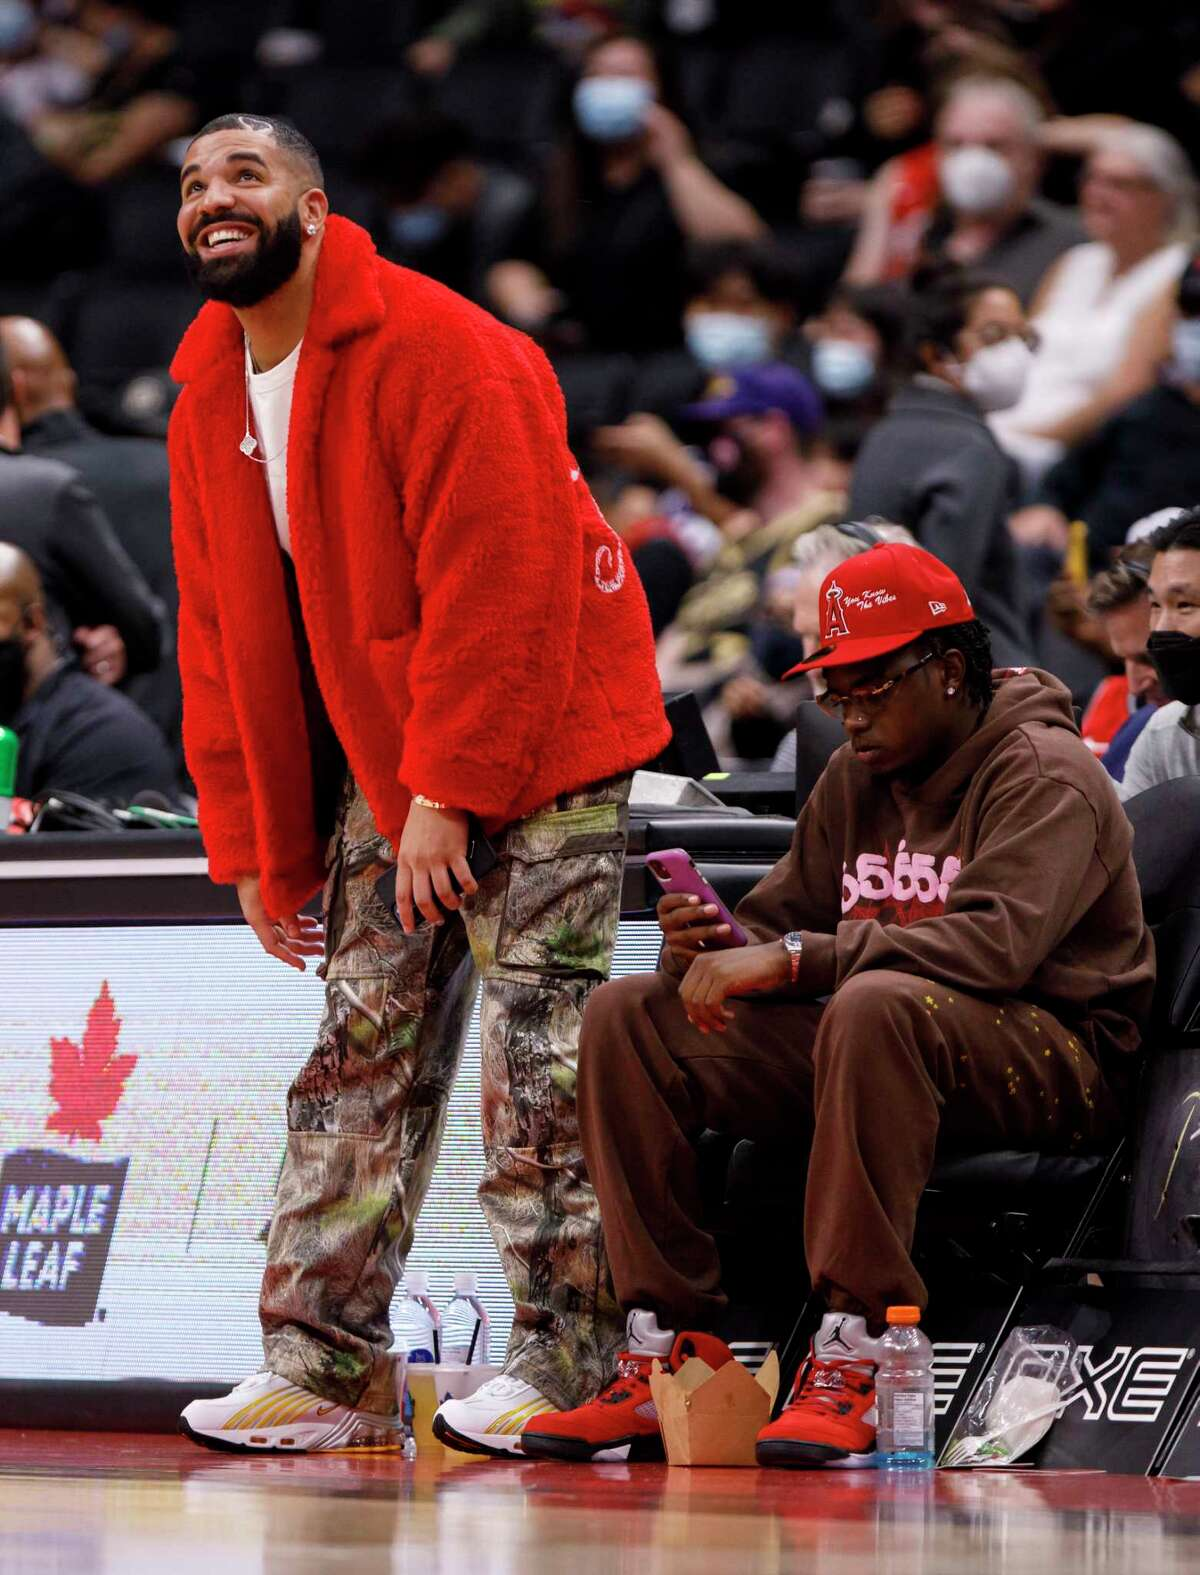 Drake attends a preseason NBA game between the Toronto Raptors and the Houston Rockets at Scotiabank Arena on October 11, 2021 in Toronto, Canada.